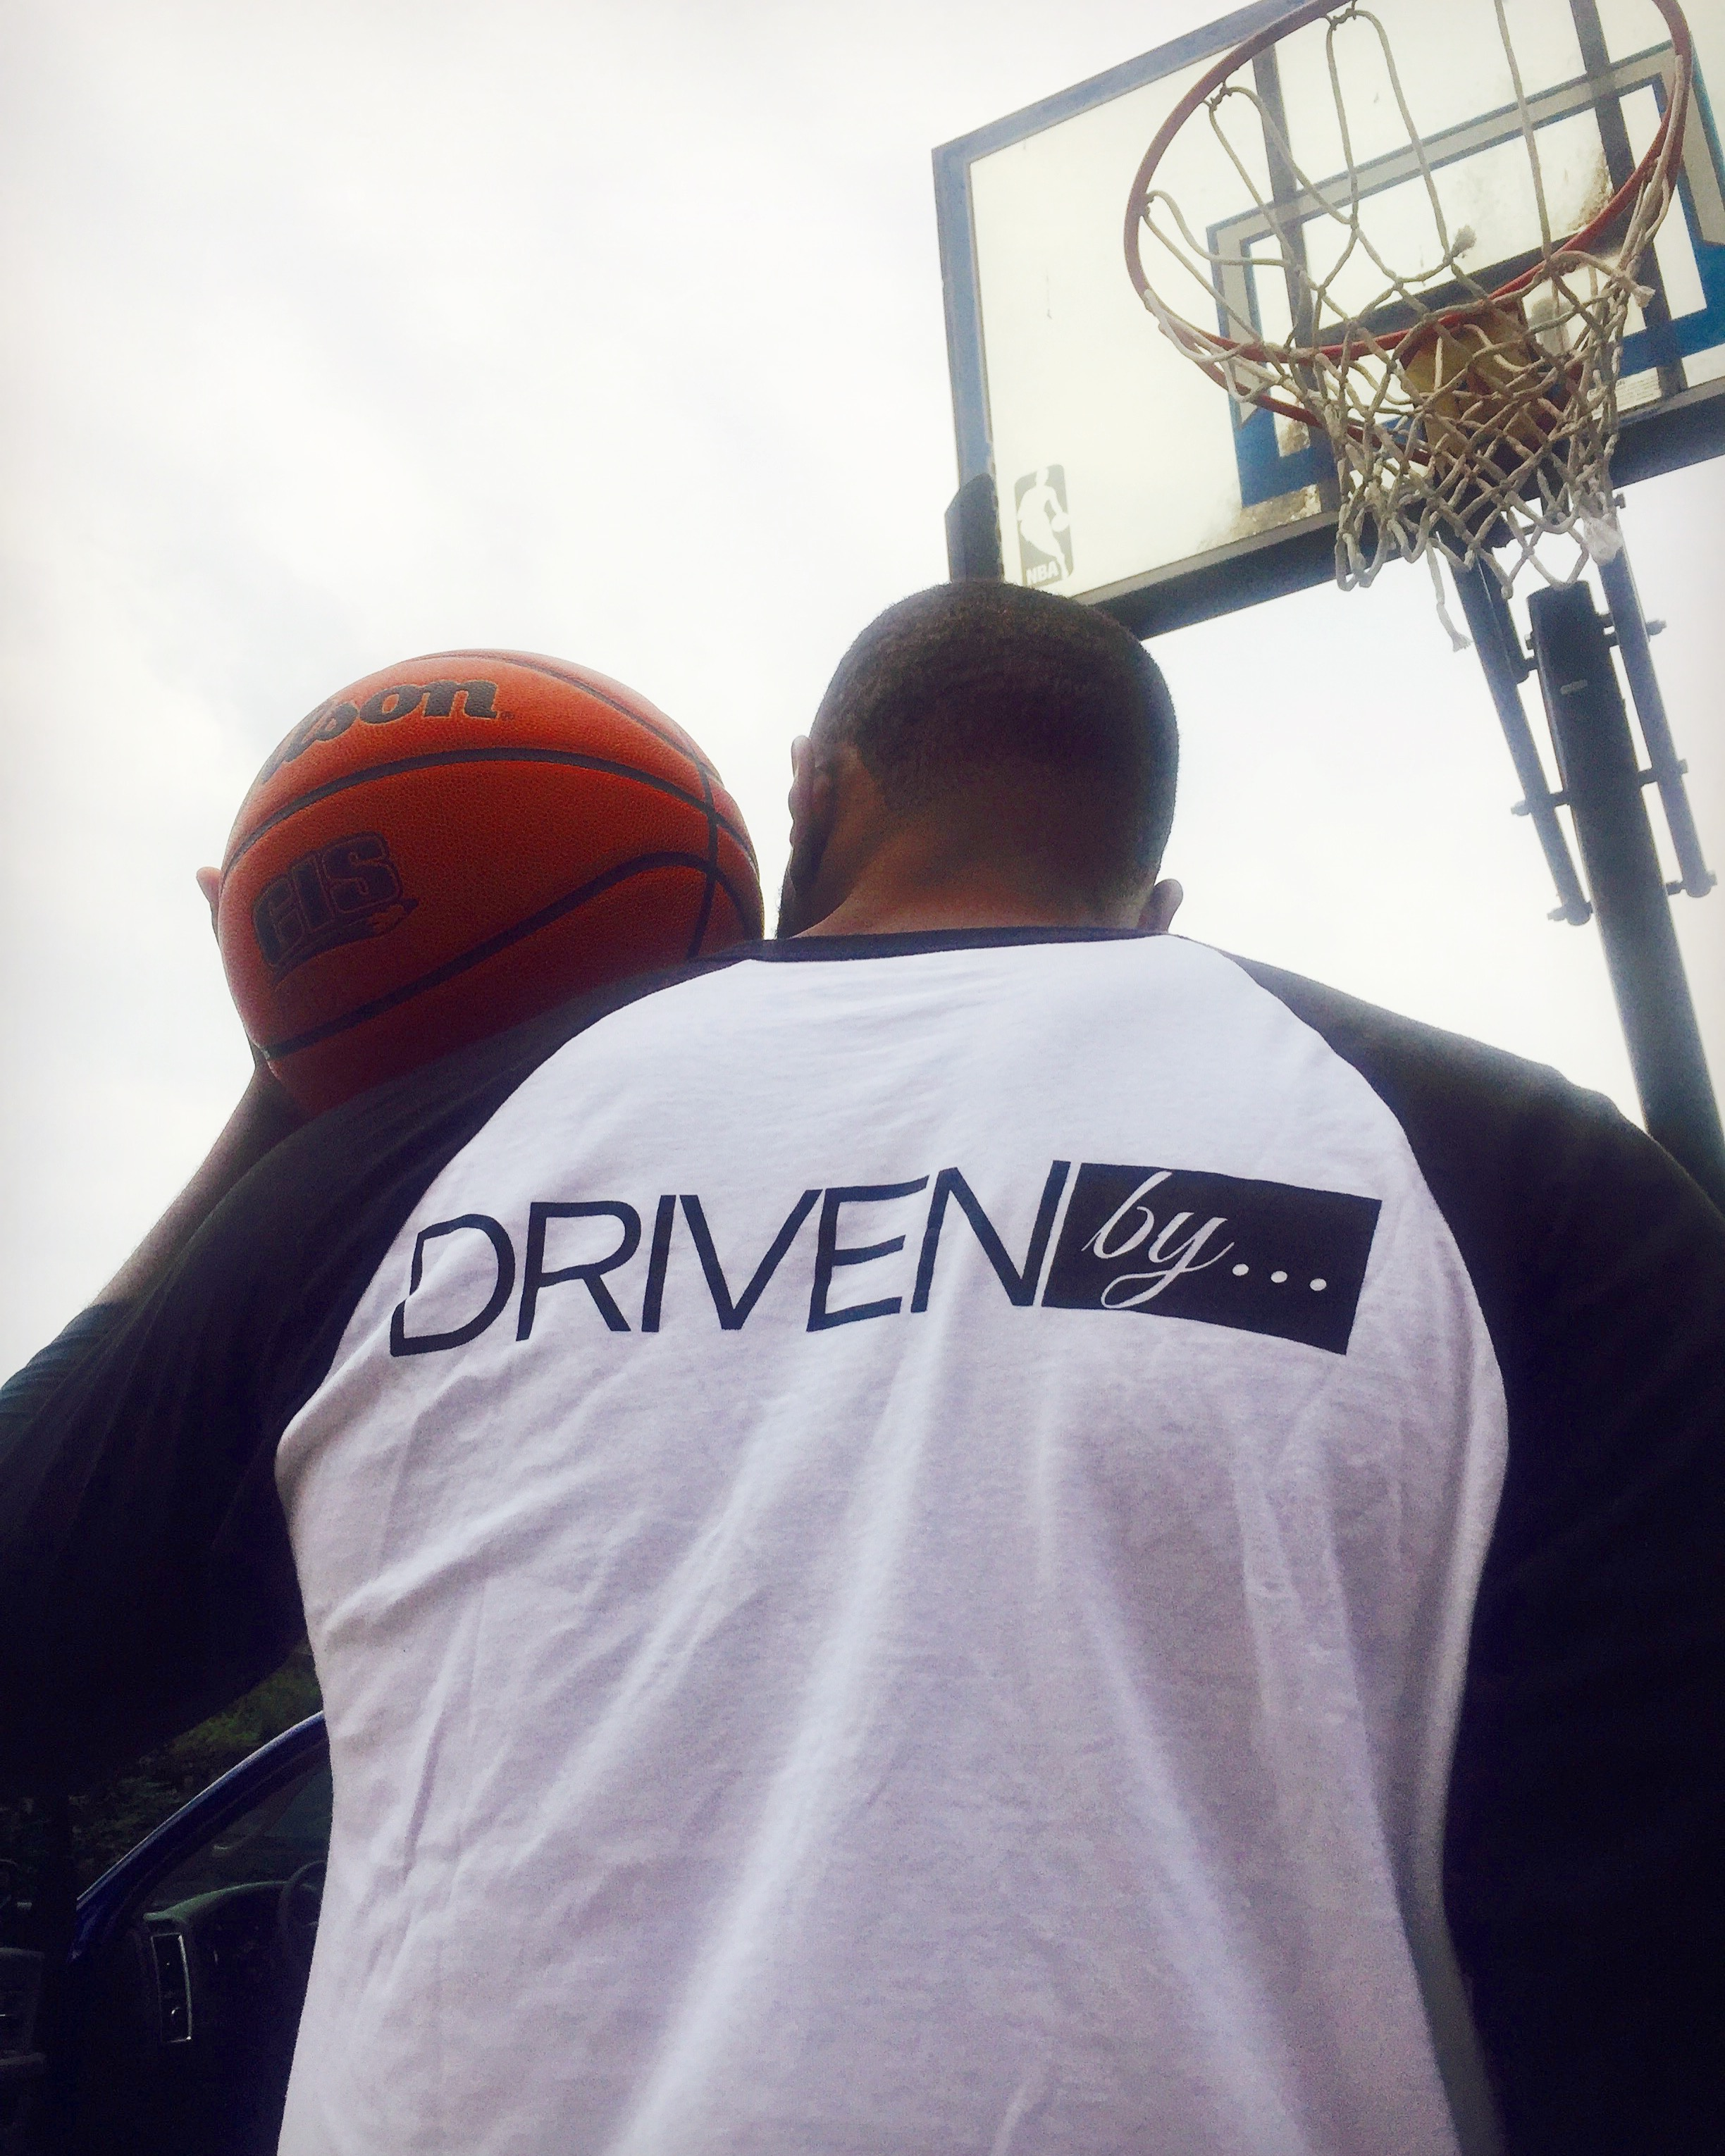 Driven By... basketball.